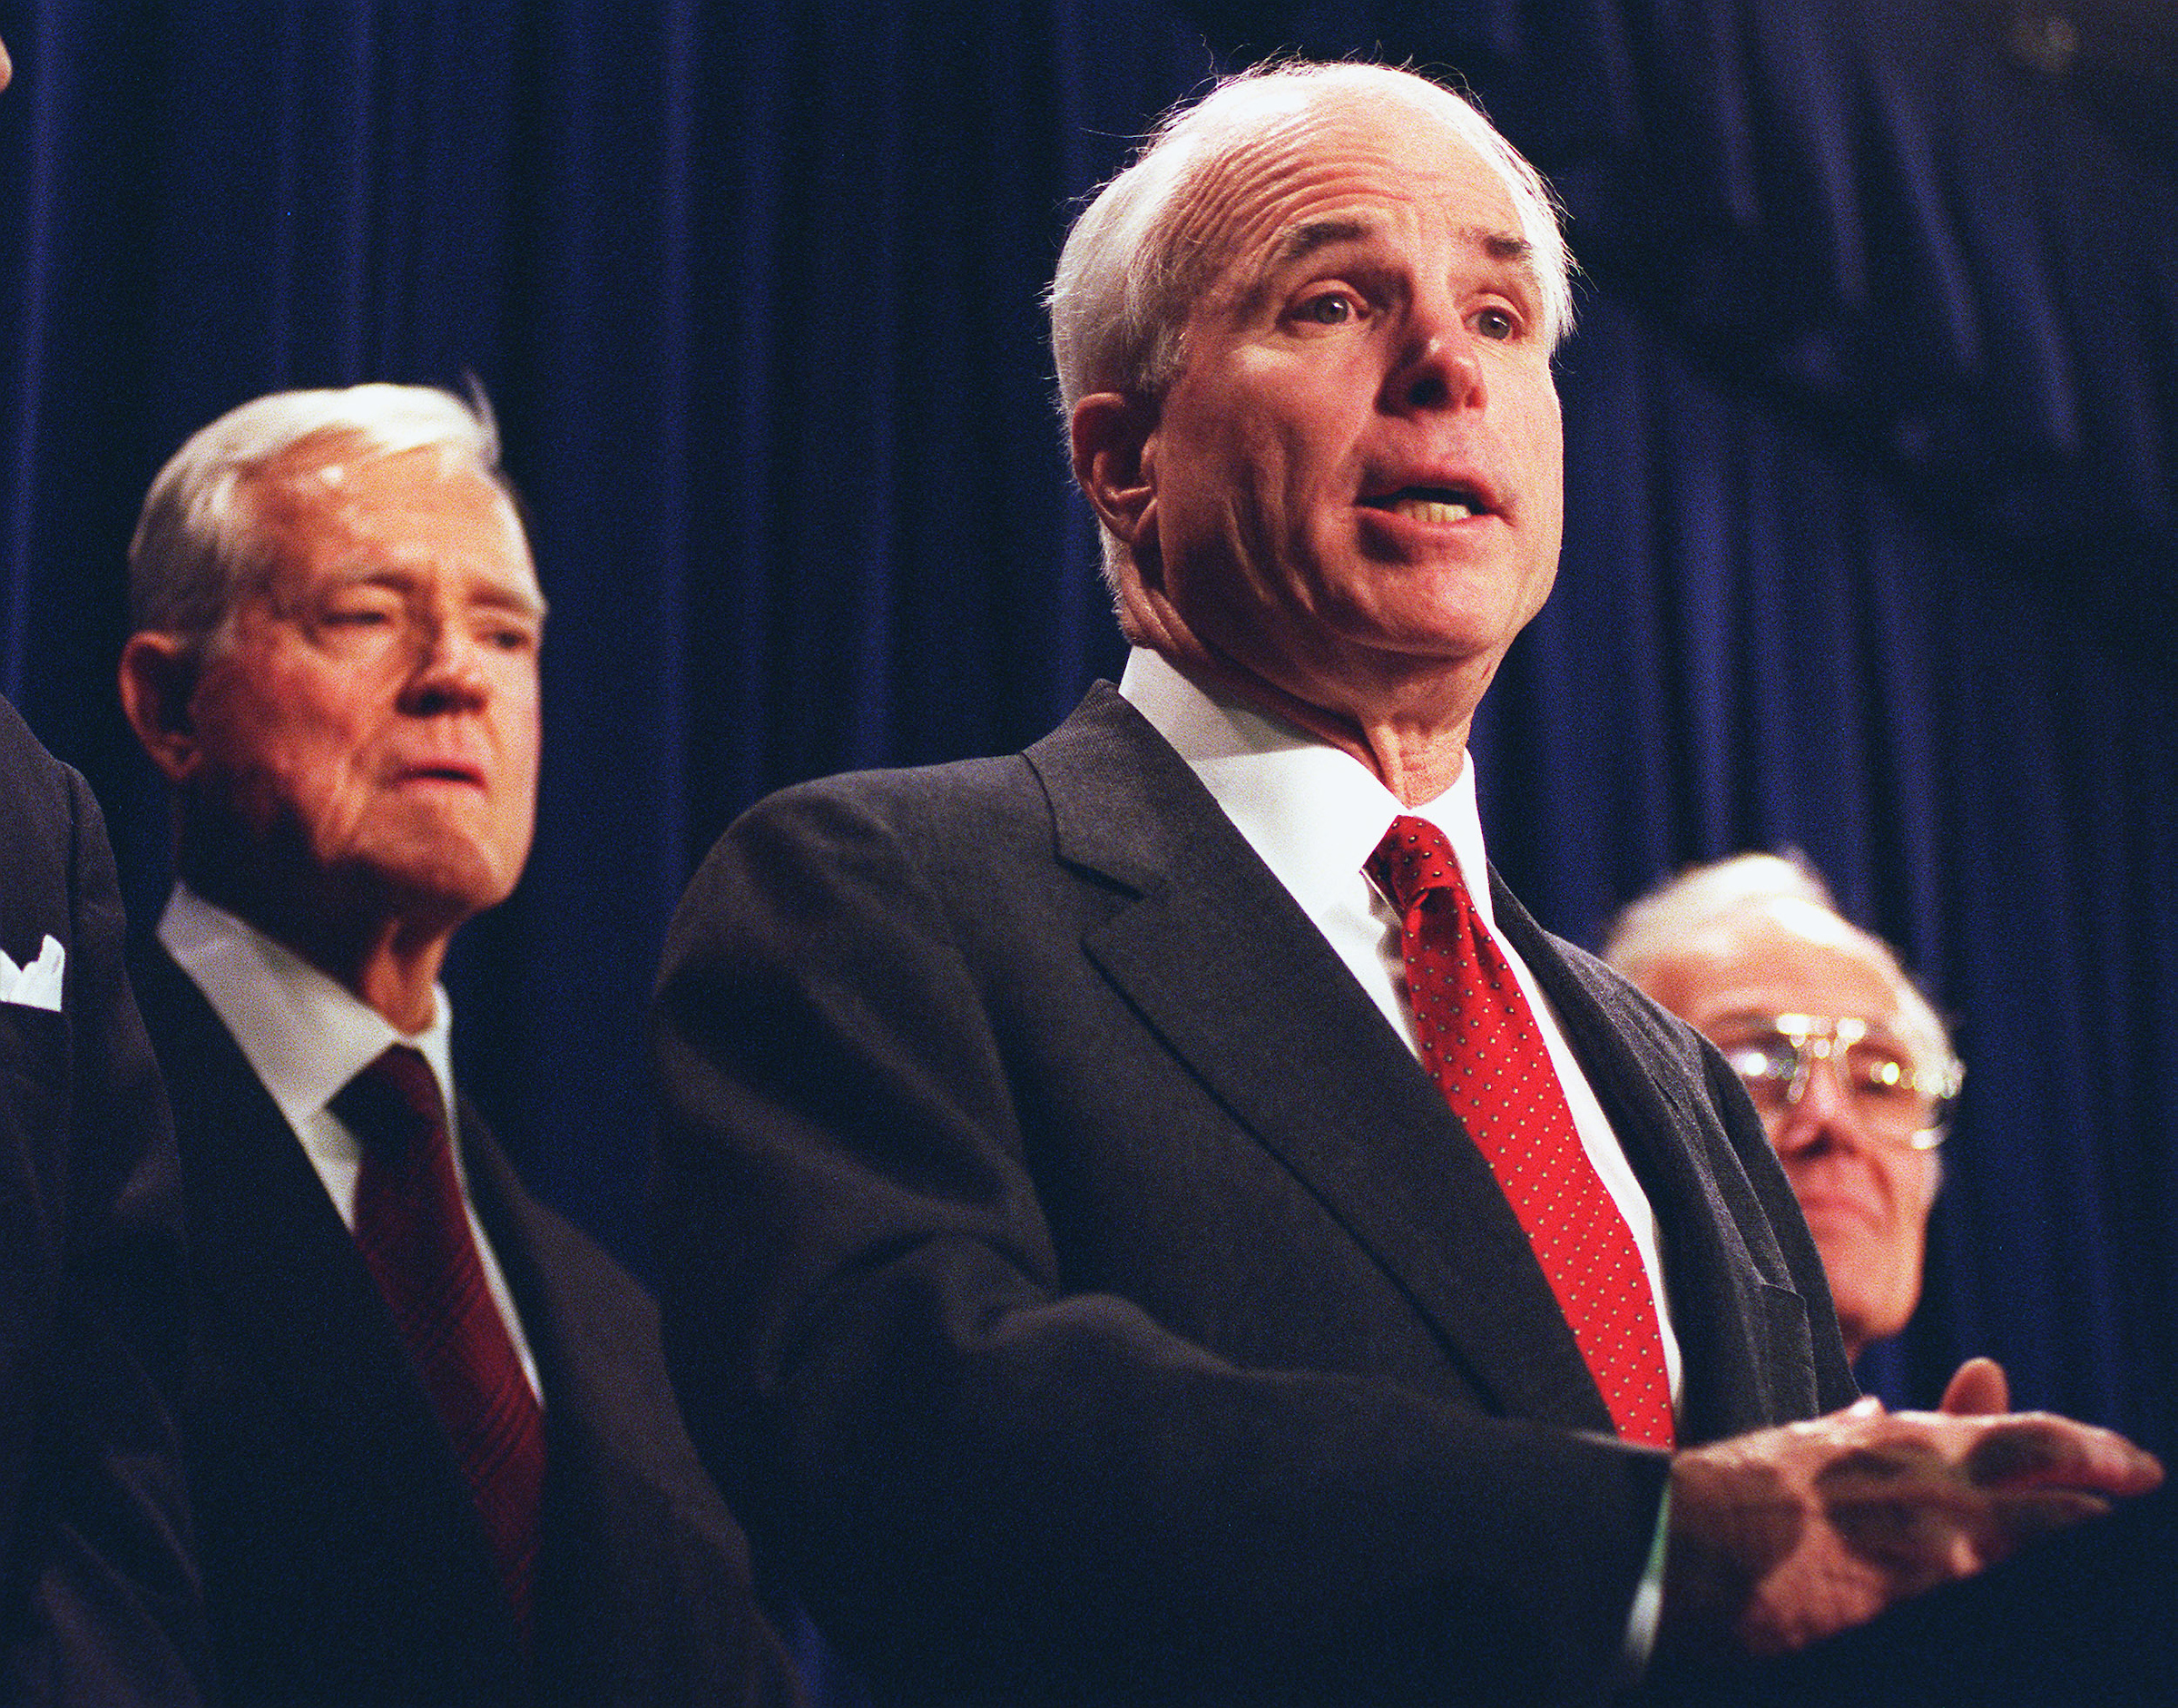 11/5/97.TOBACCO SETTLEMENT: Senate Commerce Committee Chairman John McCain,R-Ariz.,and Ranking Member Ernest F. Hollings,D-S.C.,during a press conference on the bill on global tobacco settlement..CONGRESSIONAL QUARTERLY PHOTO BY DOUGLAS GRAHAM